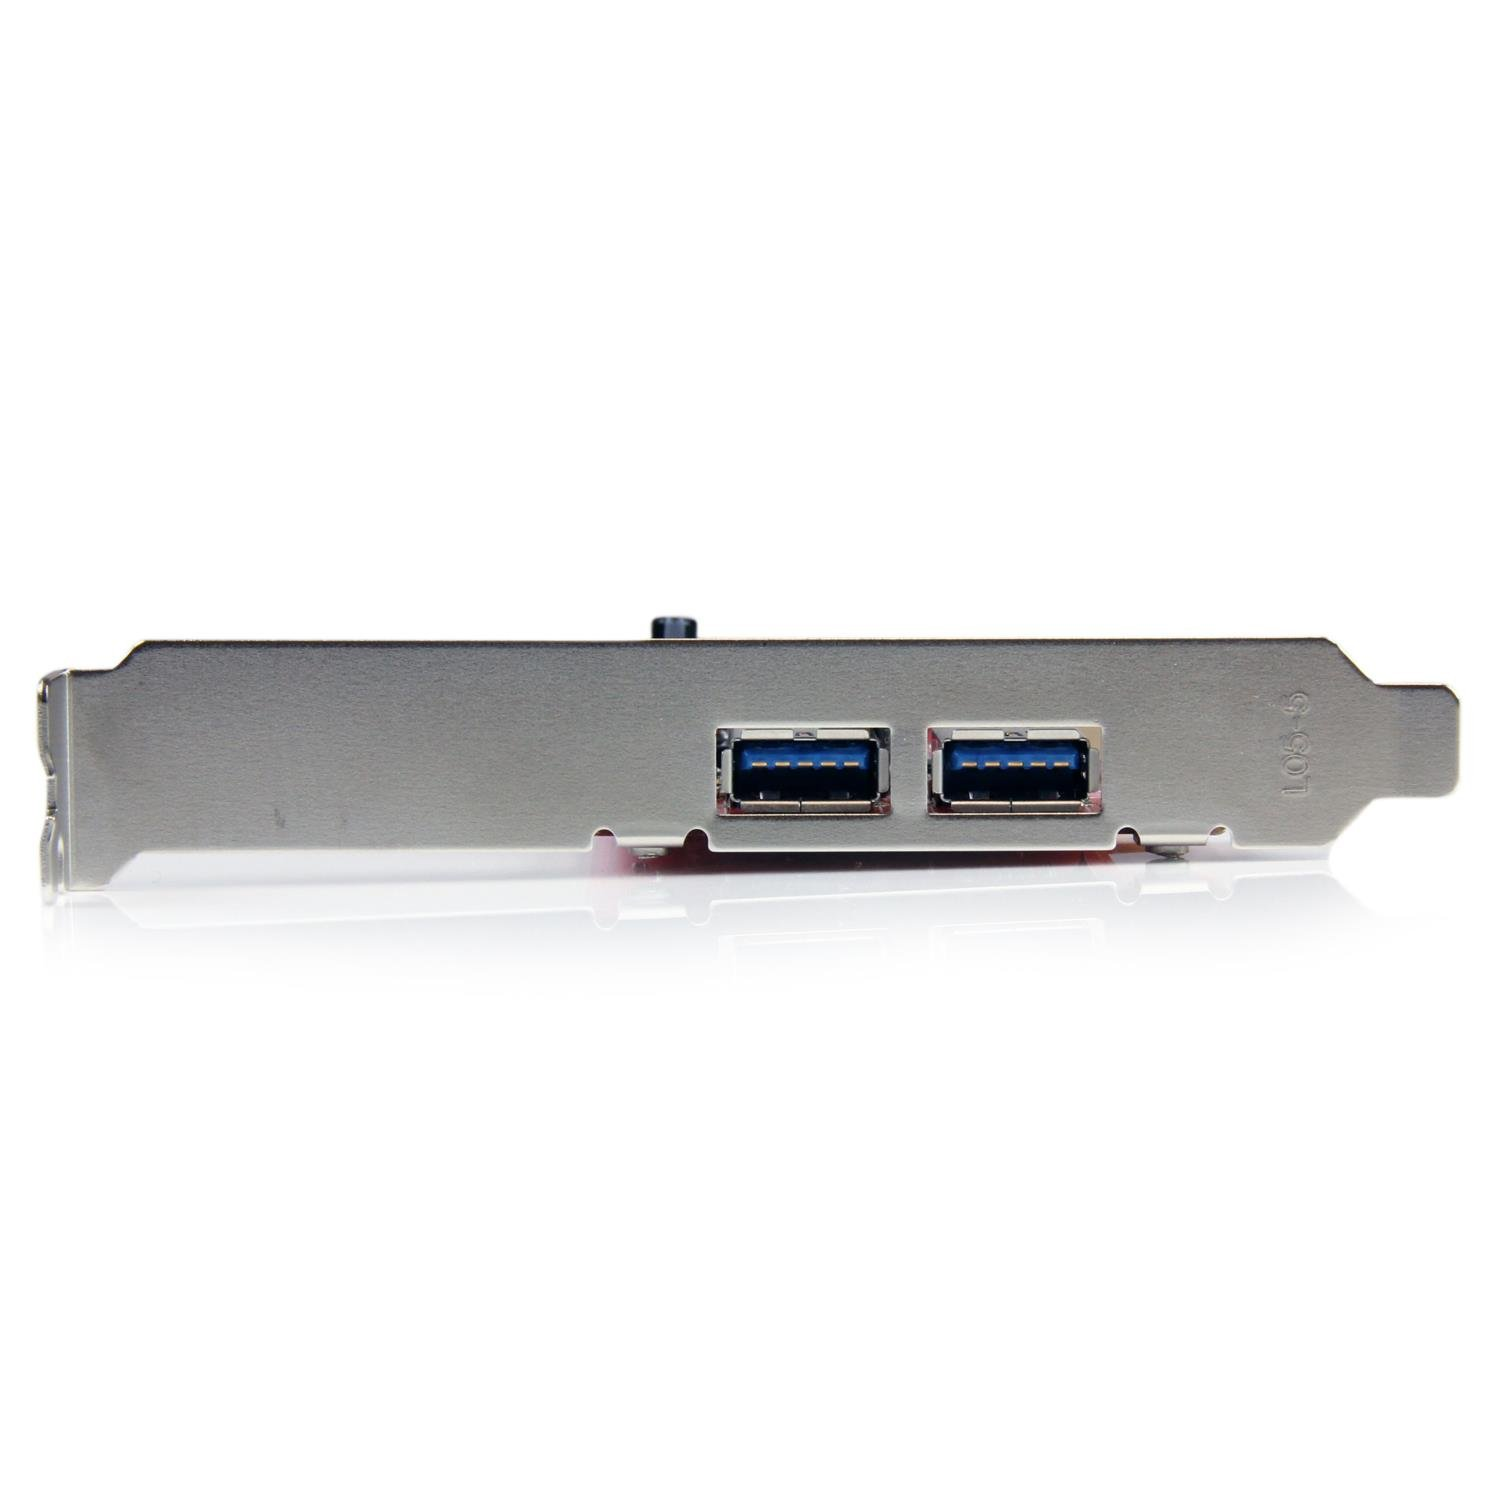 StarTech com 2 Port PCI SuperSpeed USB 3 0 Adapter Card with SATA Power  PCIUSB3S22, Red